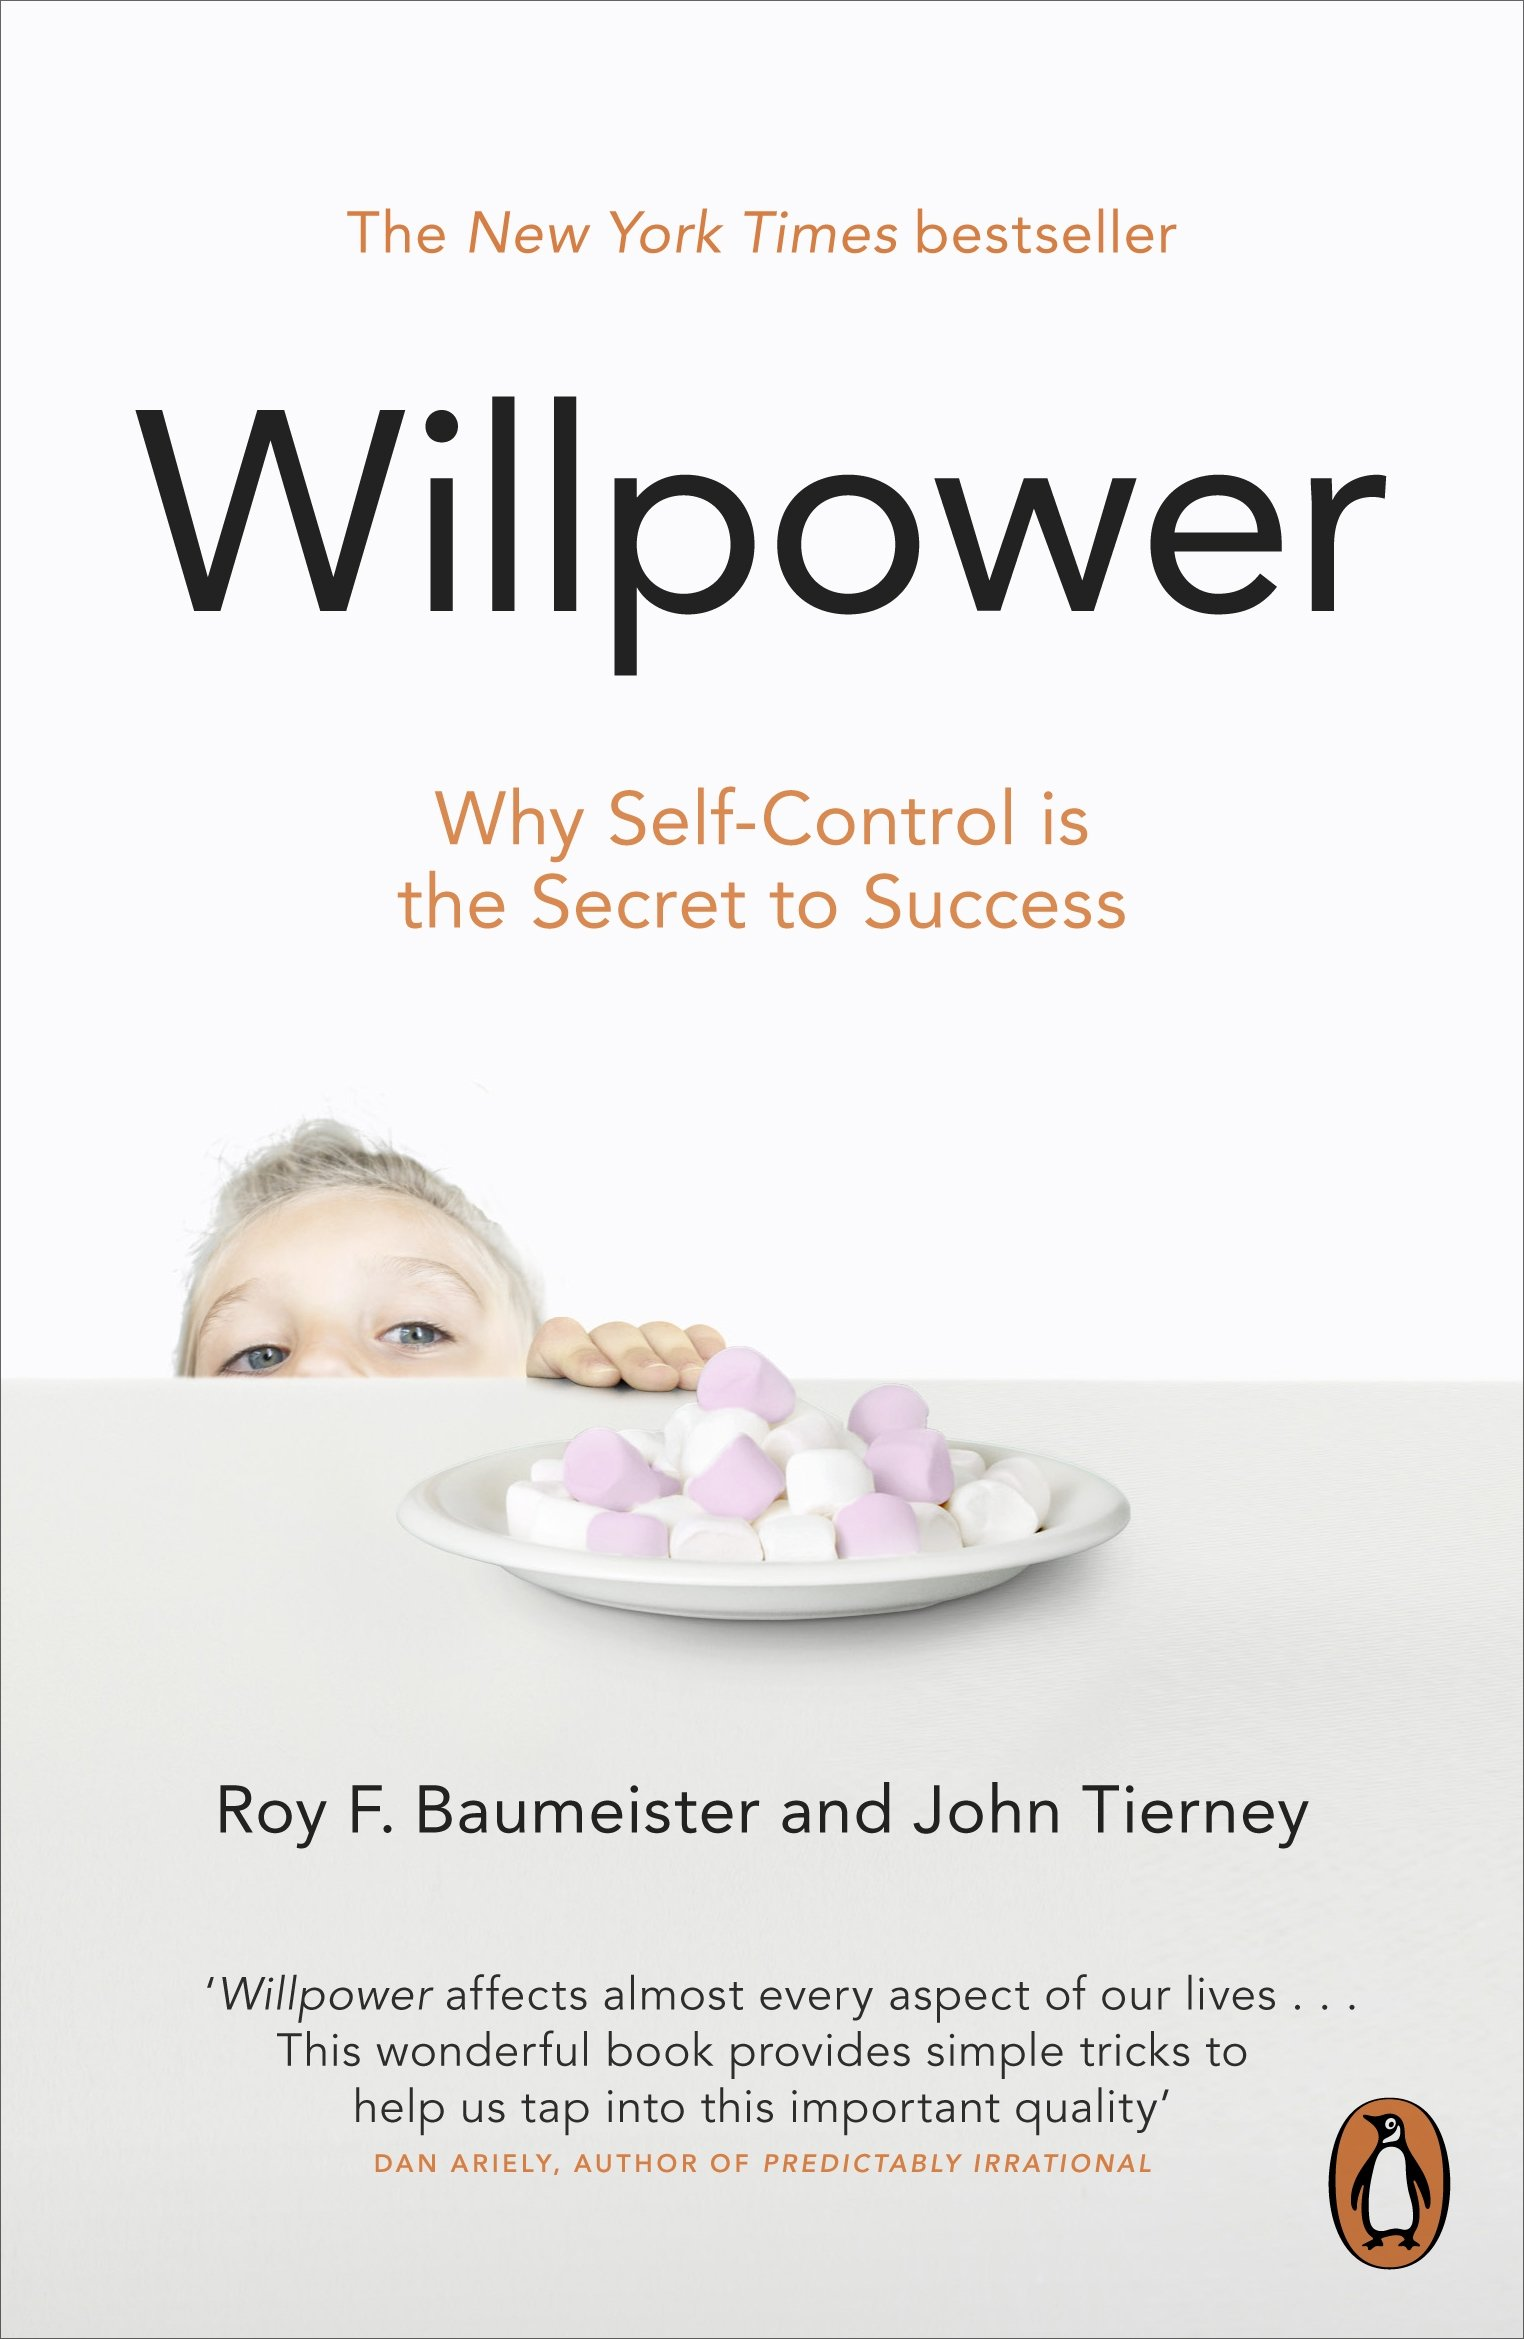 Willpower: Why Selfcontrol Is The Secret To Success: Amazon: Roy F  Baumeister, John Tierney: 9780141049489: Books